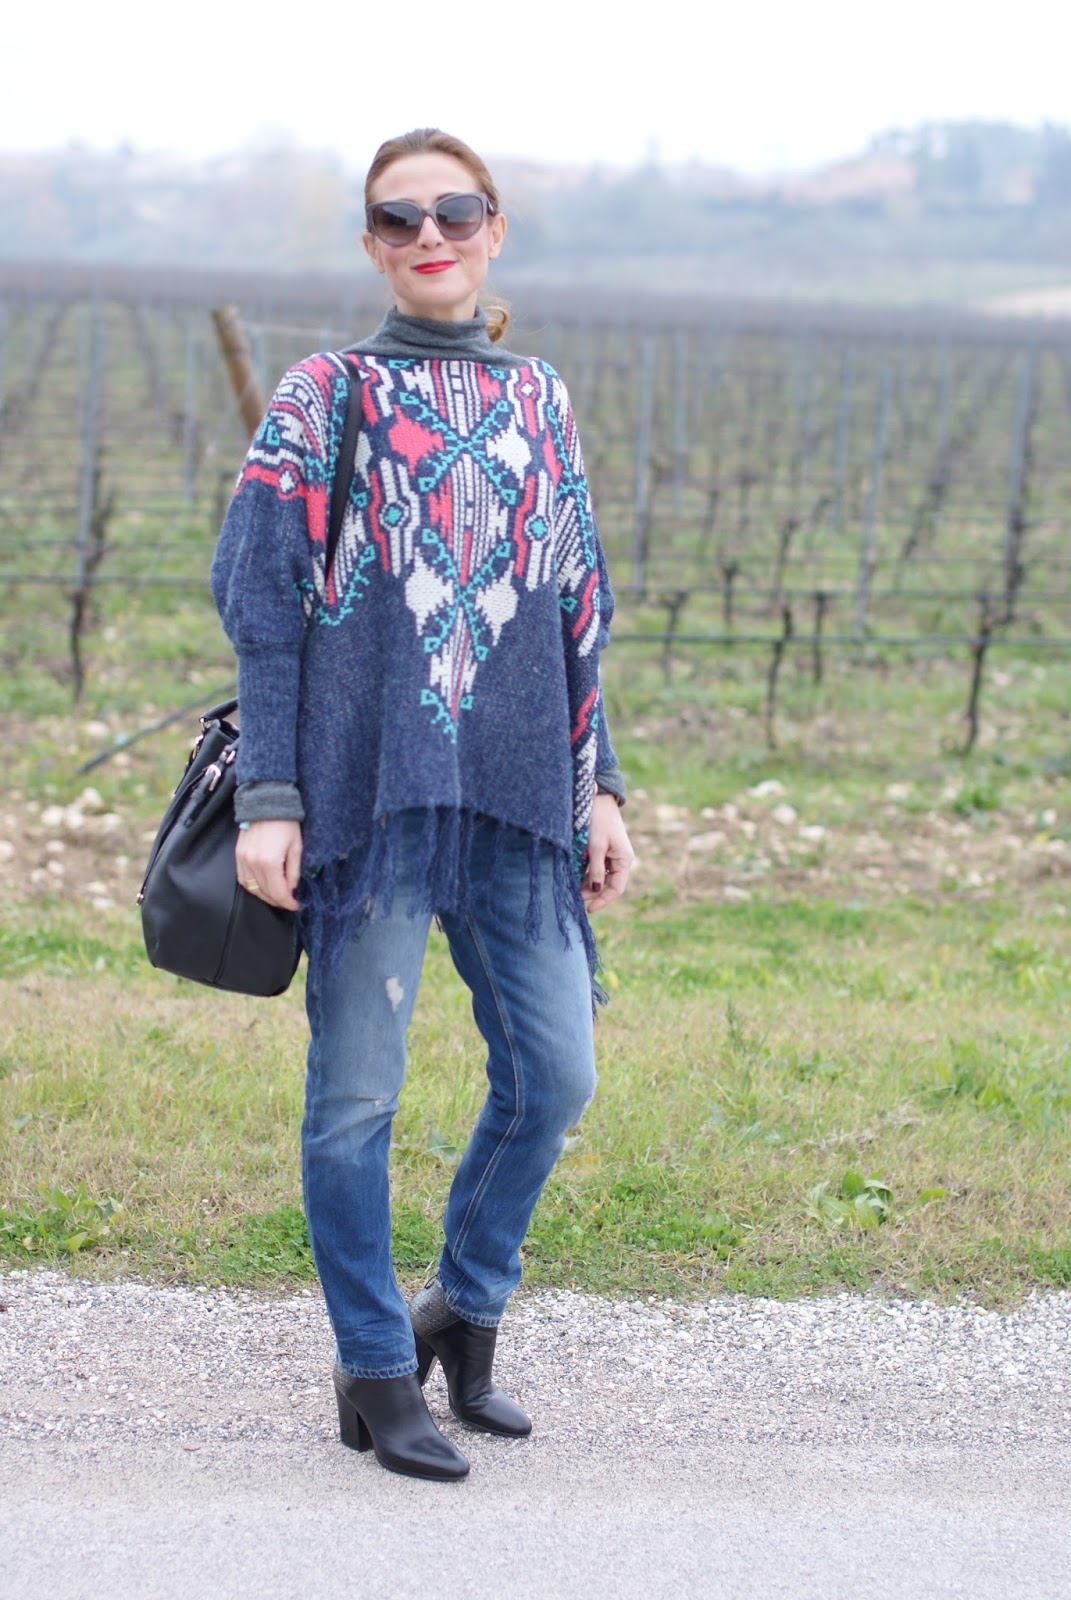 Fringed aztec poncho for a western girl style inspired outfit on Fashion and Cookies fashion blog, fashion blogger style